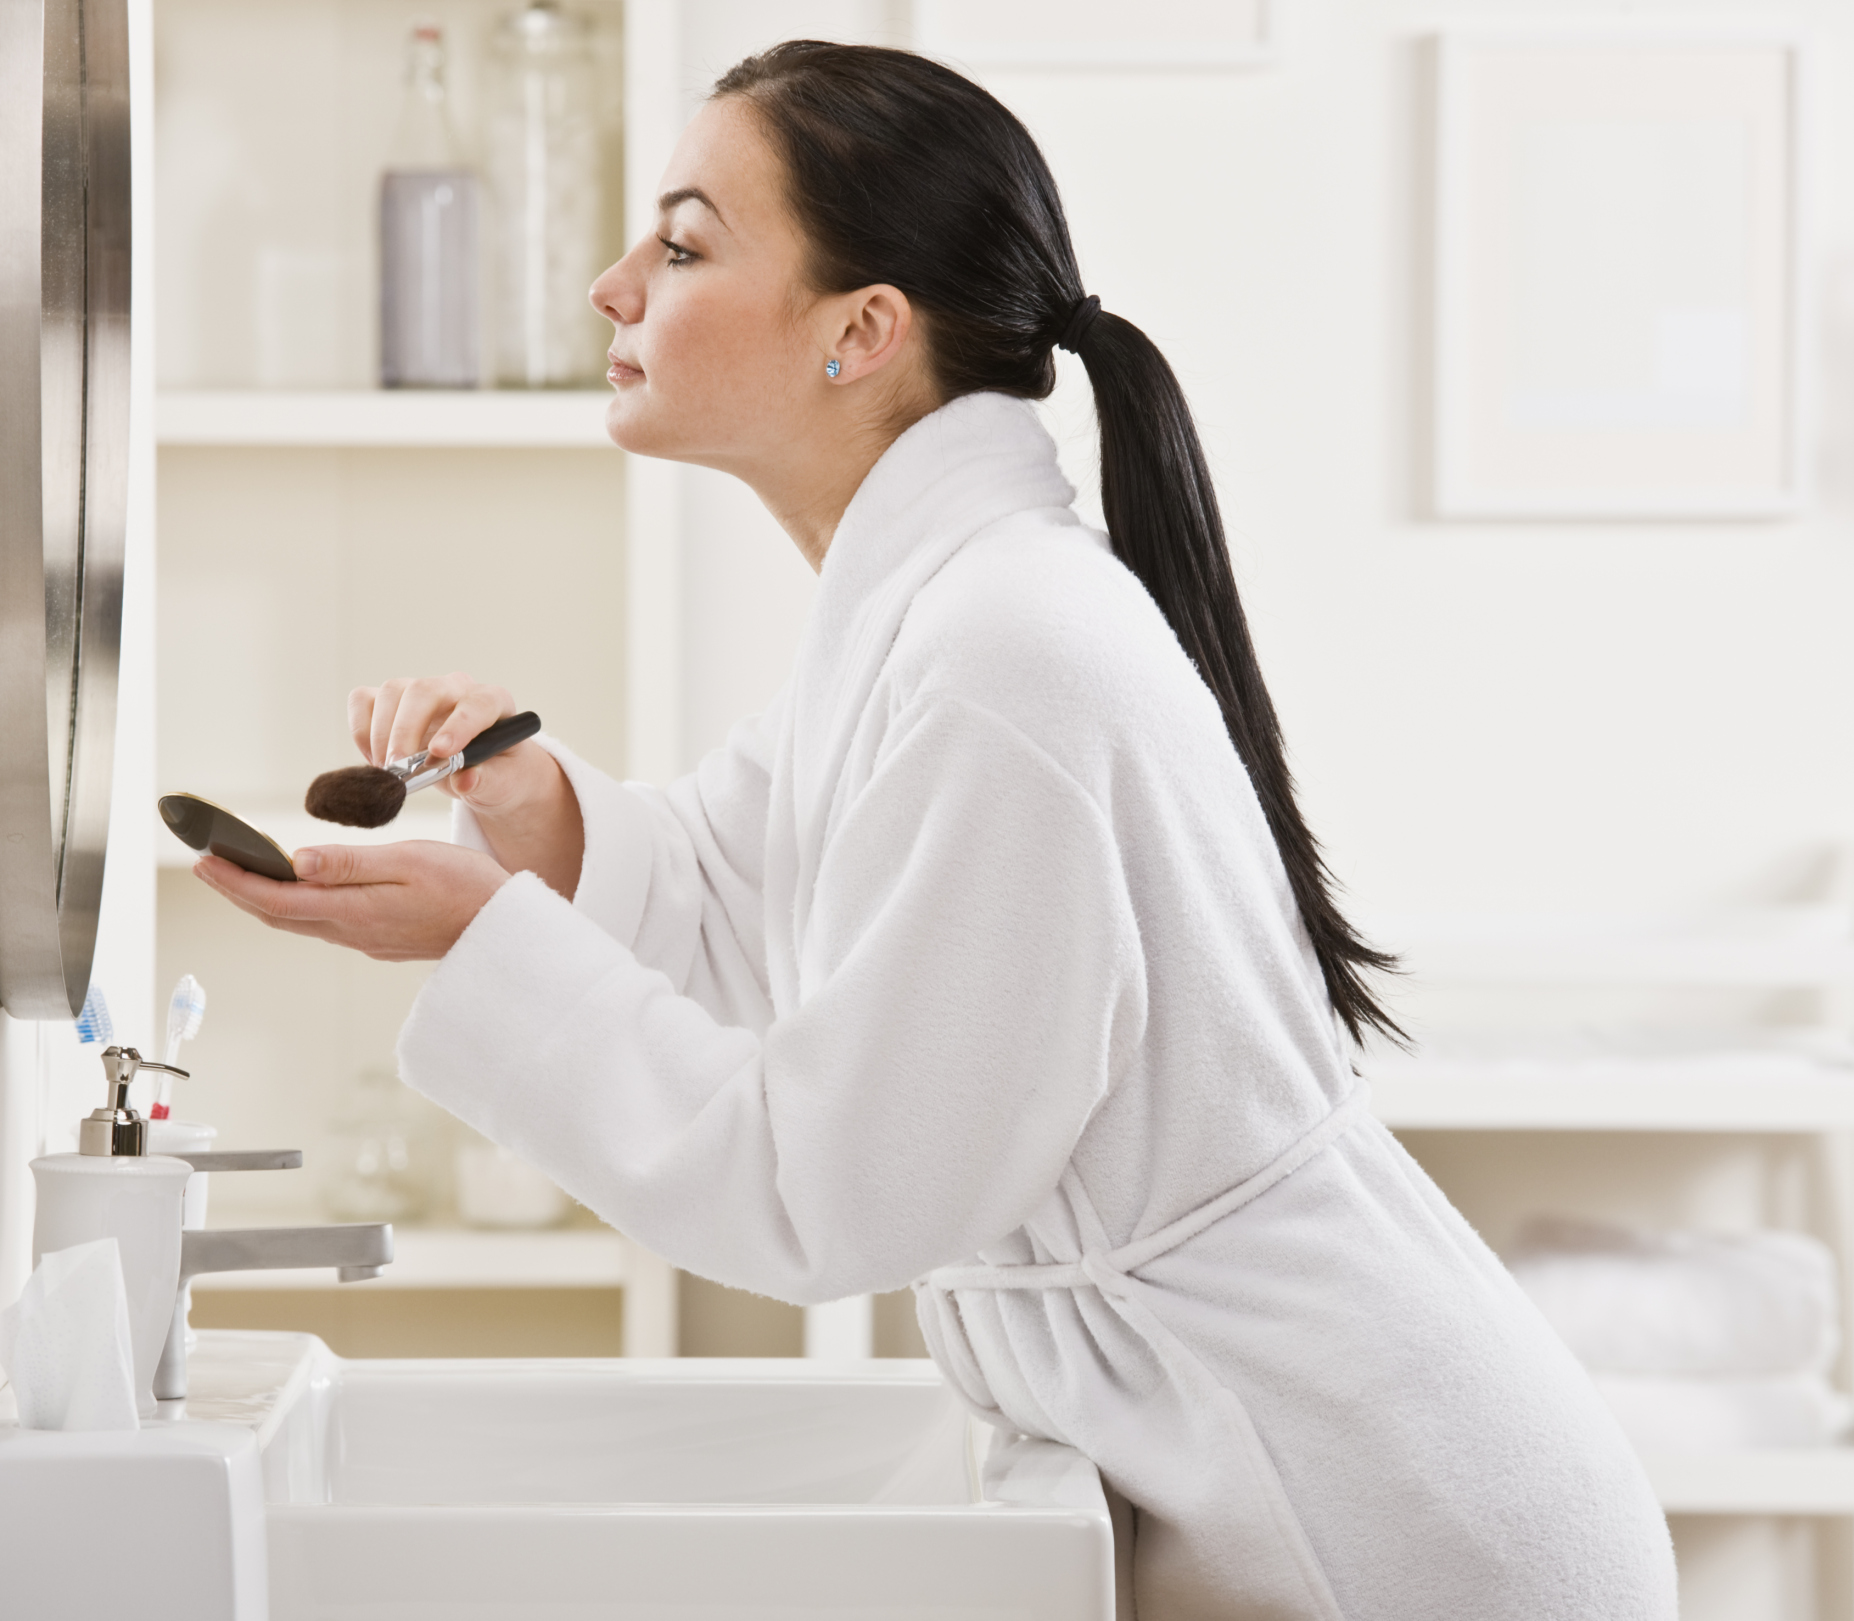 Brunette woman in a white bathrobe leaning against the sink applying cosmetics.